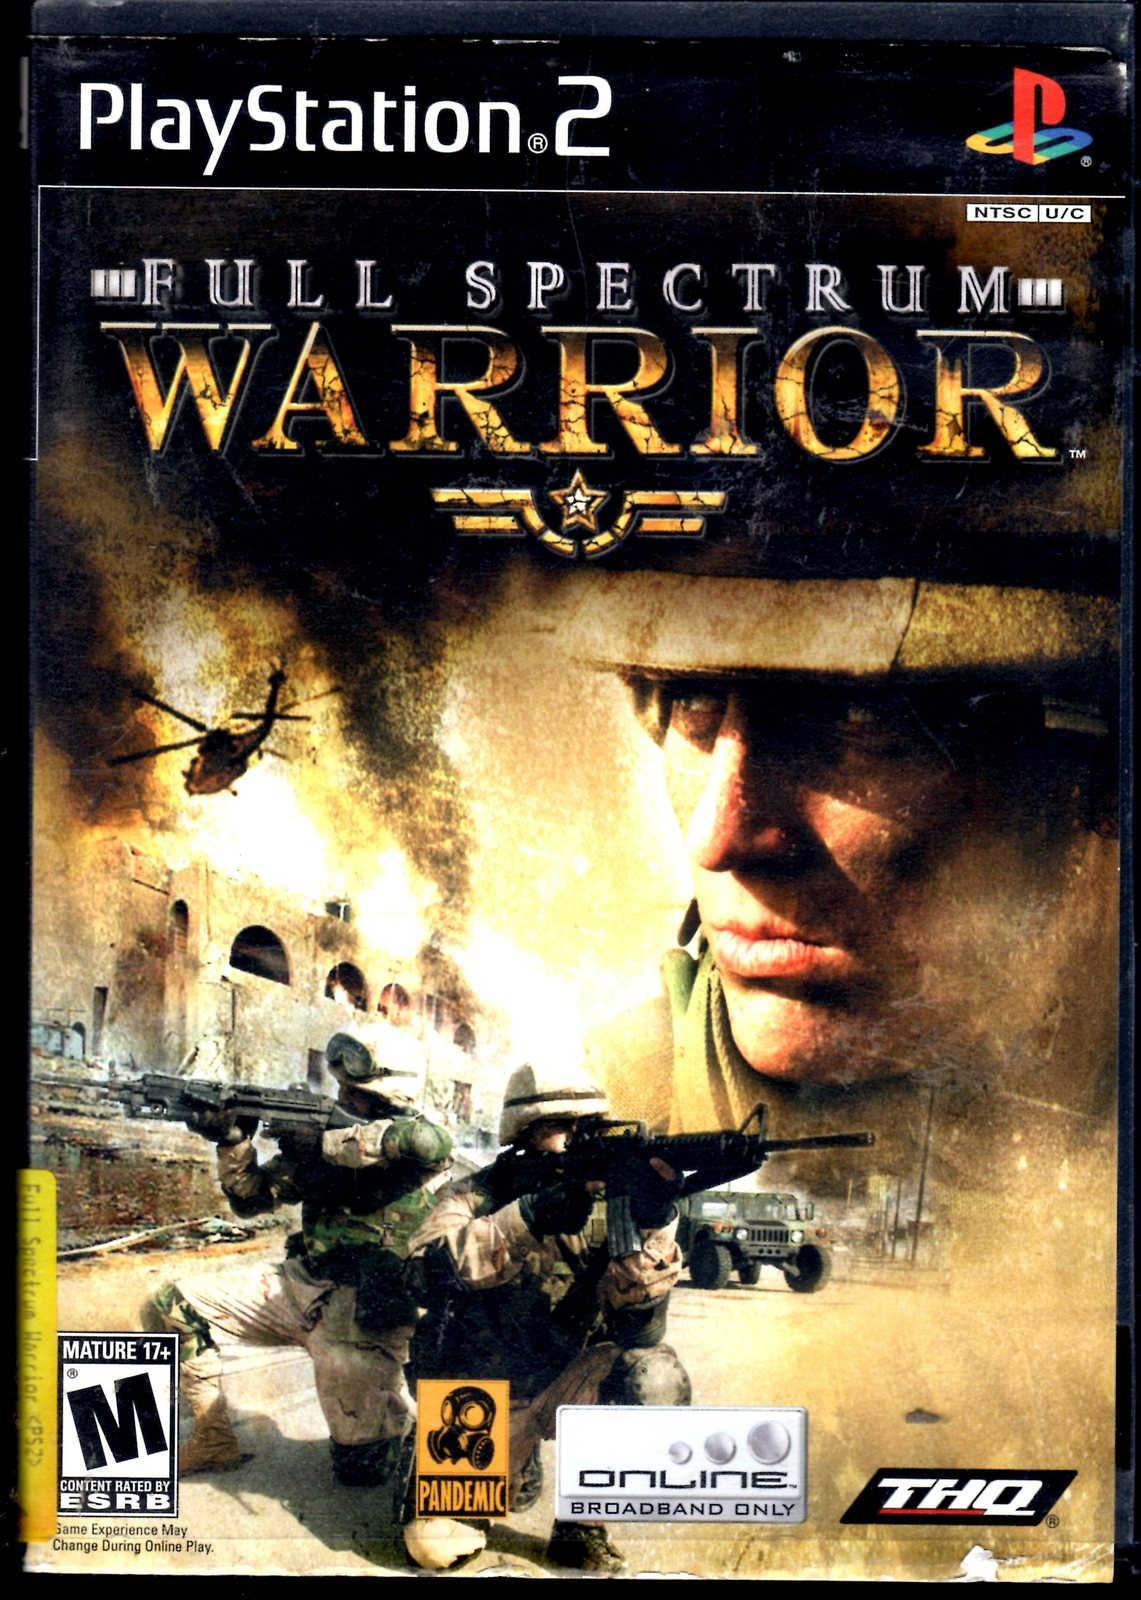 Playstation 2 - THQ - FULL SPECTRUM WARRIOR (Complete with Instructions)